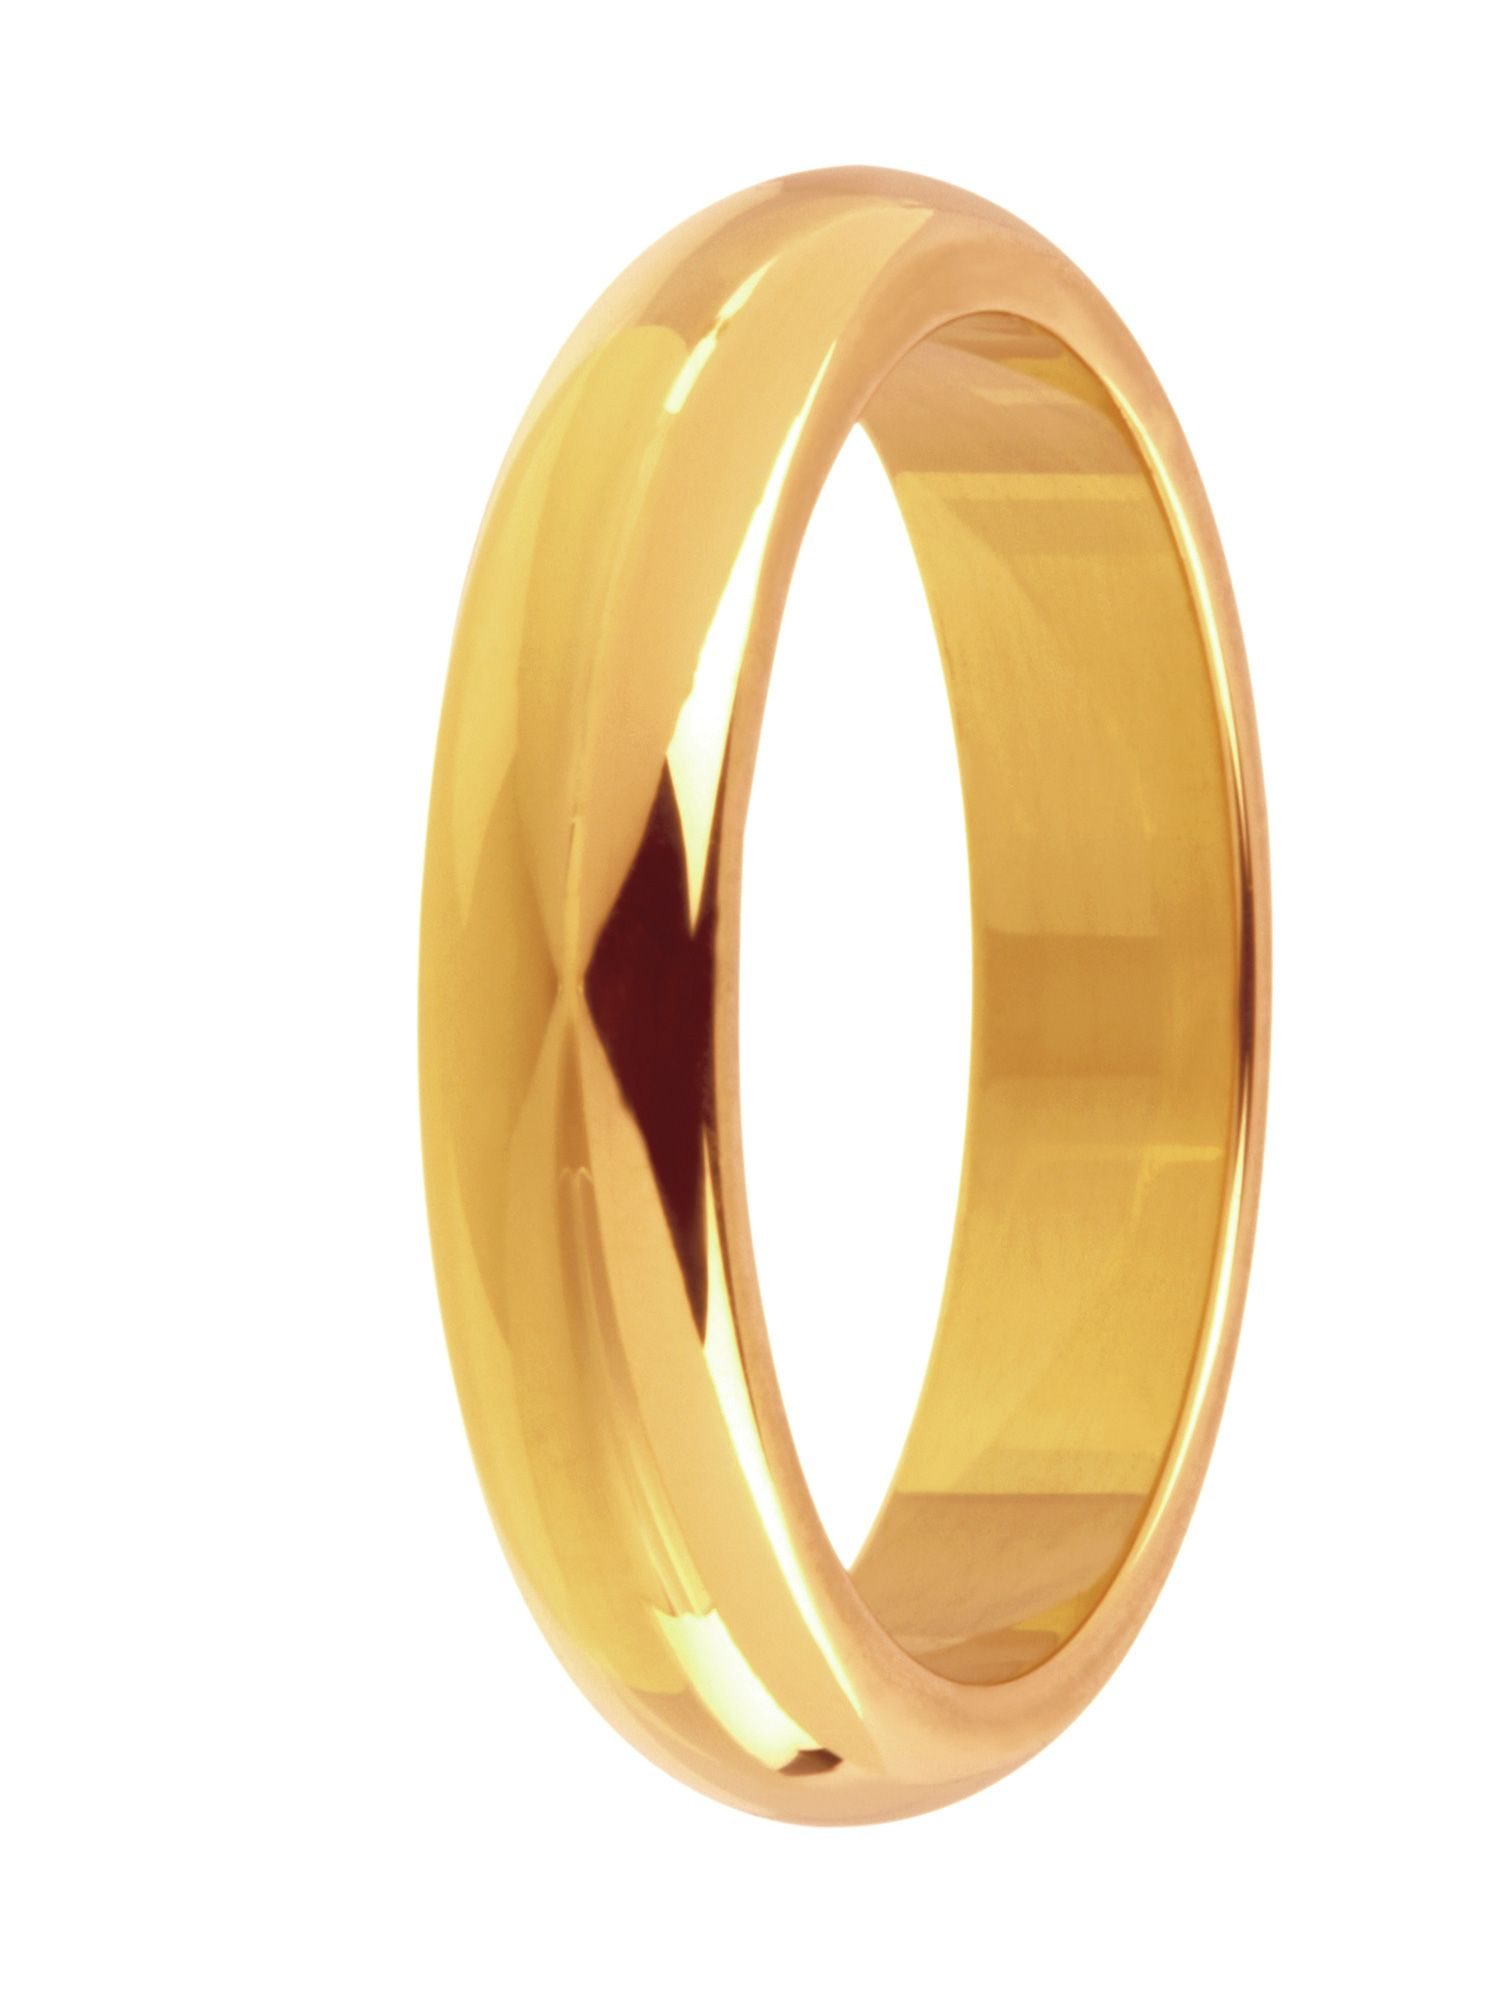 Brides 18ct gold heavy court 4mm wedding ring - Gold